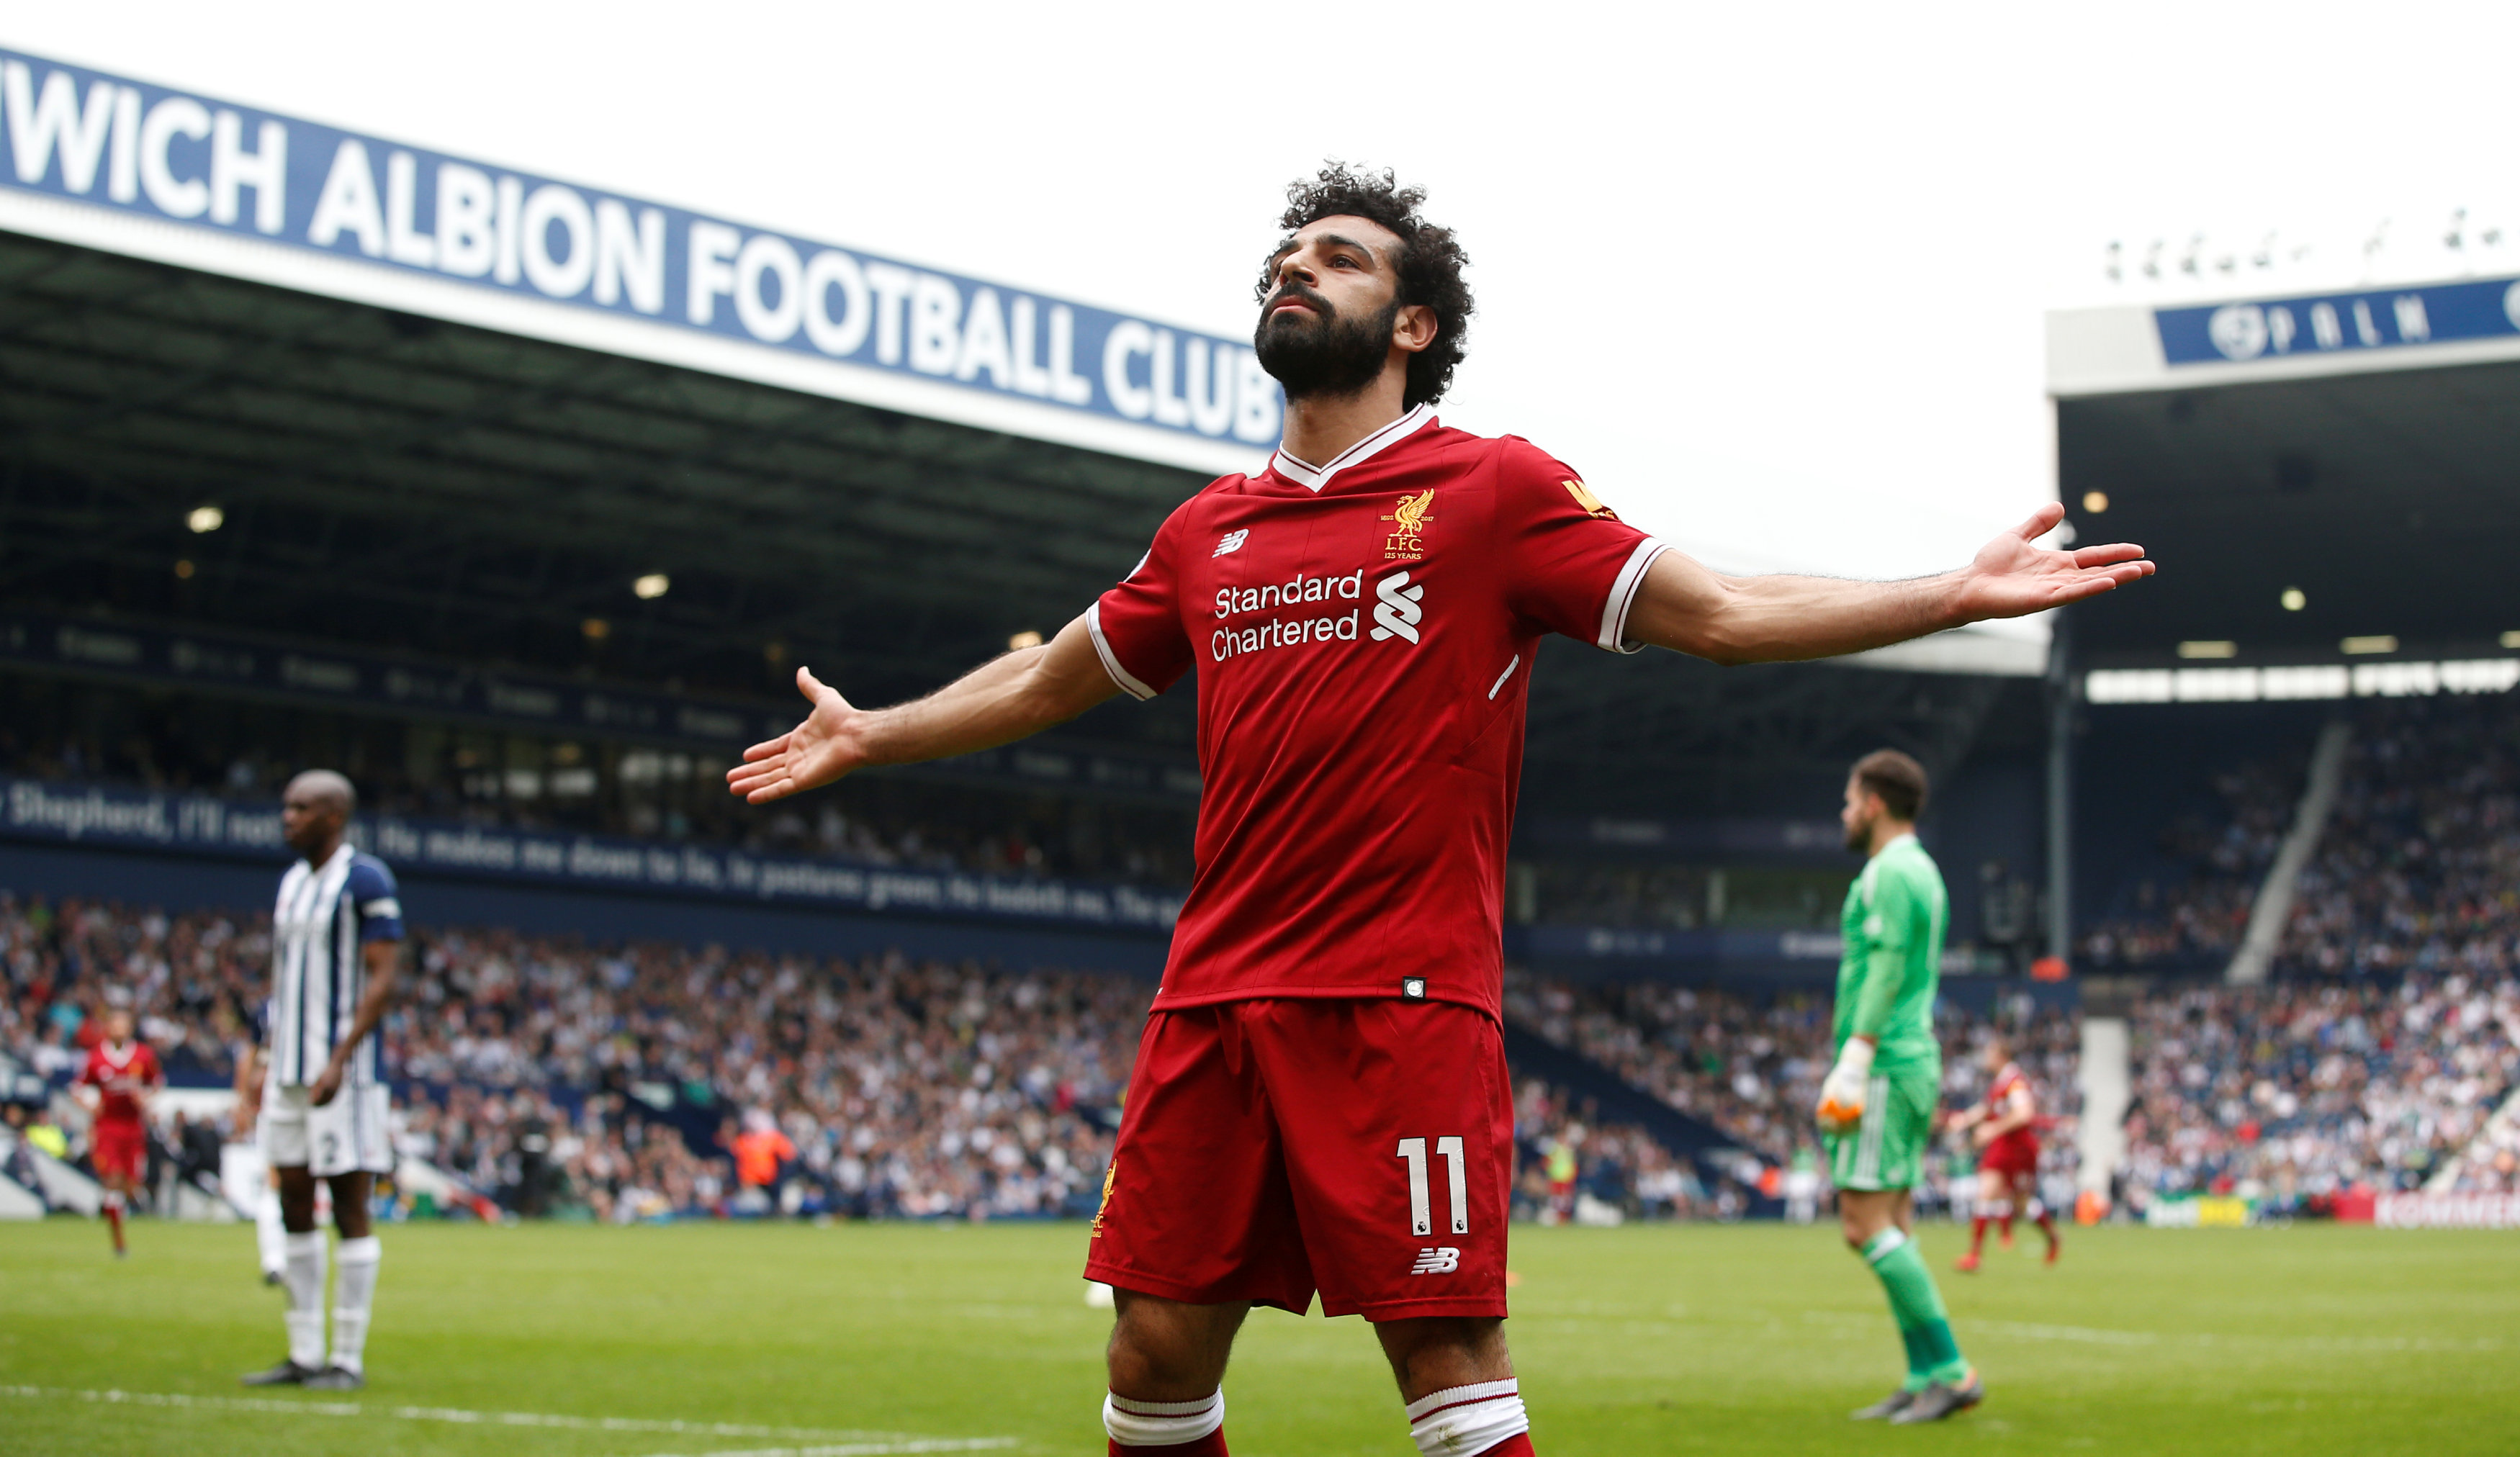 → Mohamed Salah's total of 303 points was the highest since FPL officially launched in 2002/03. Whose previous record did he break?